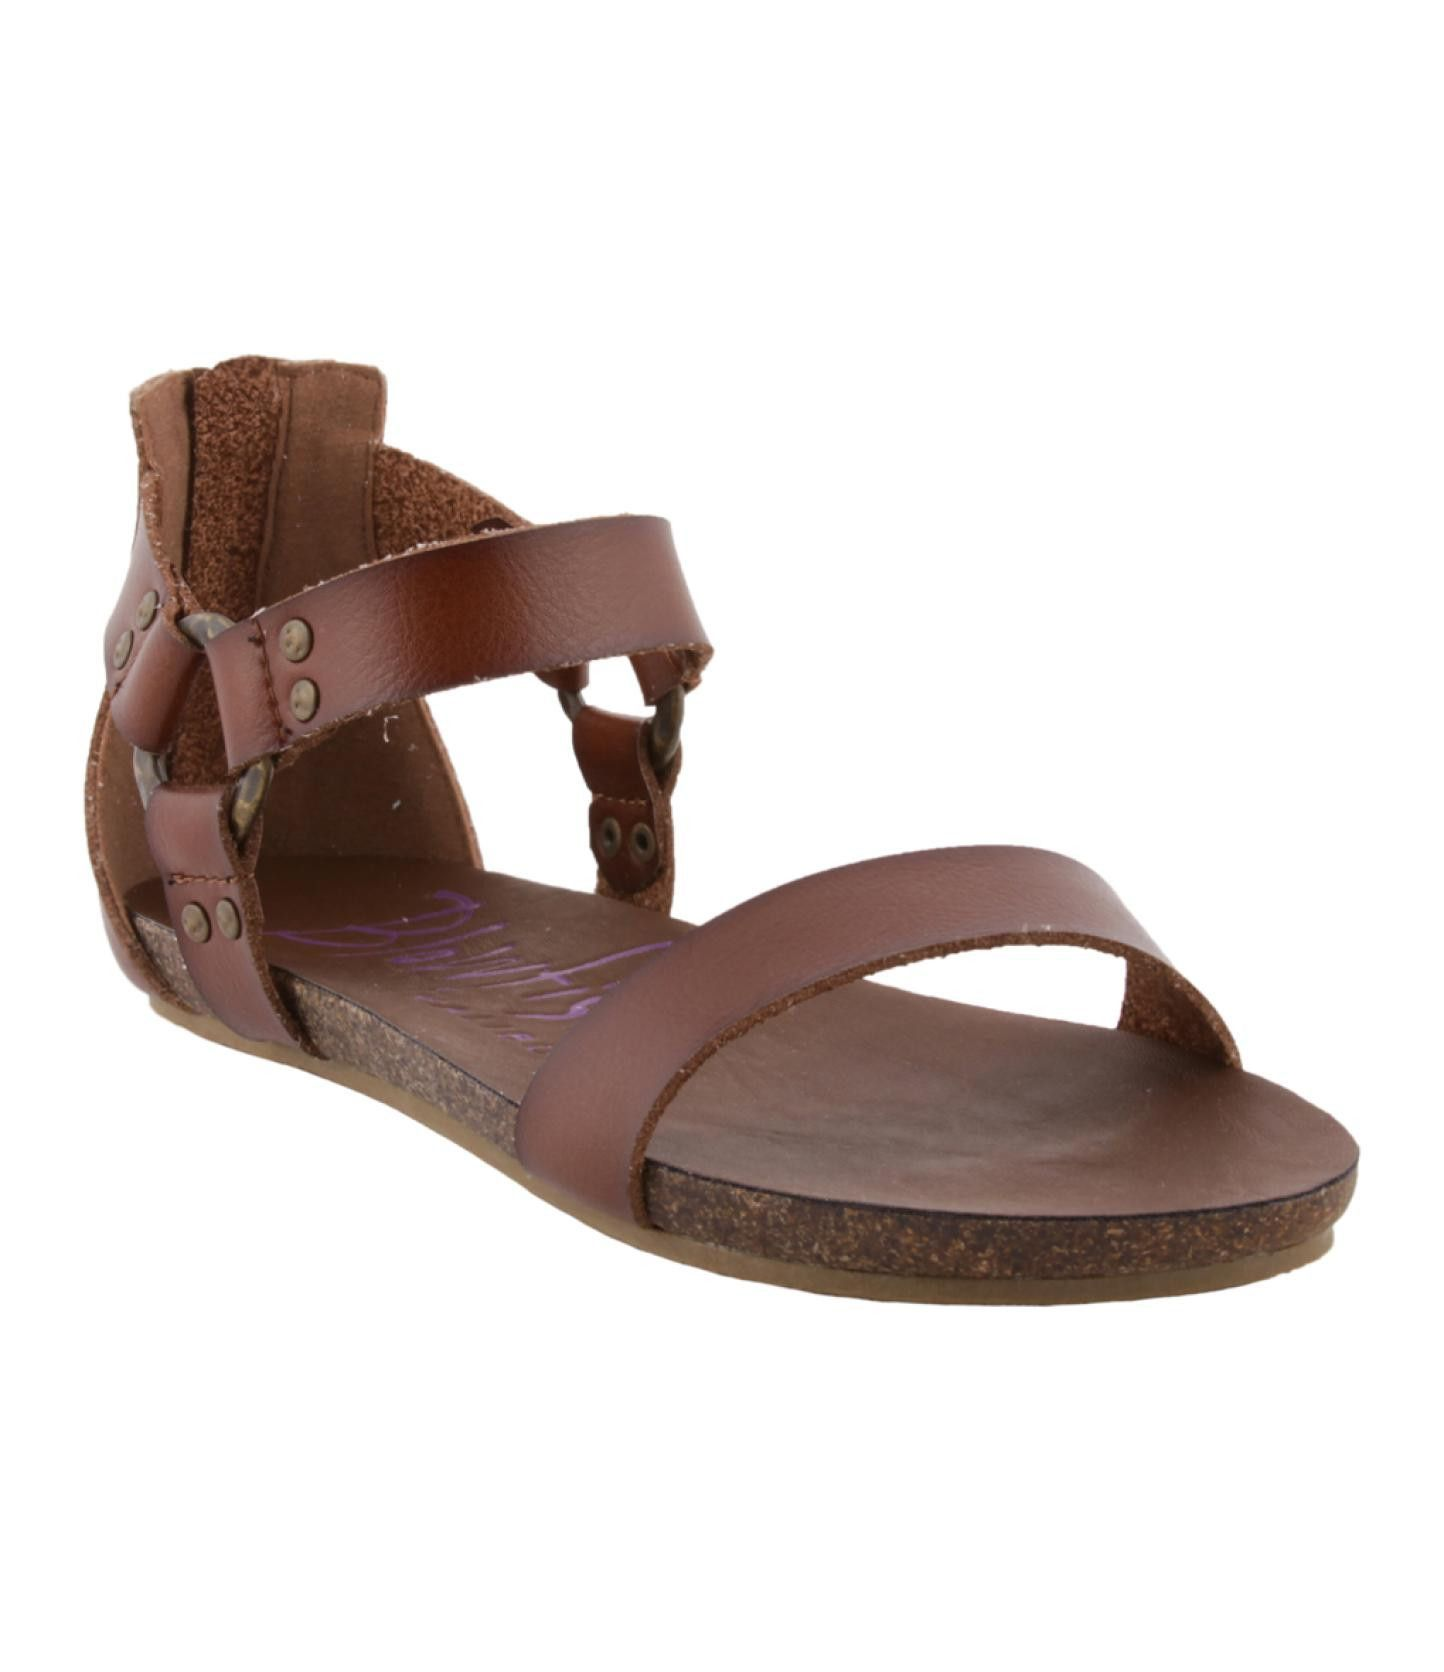 caf262ae8117 Blowfish - Grabe Sandal